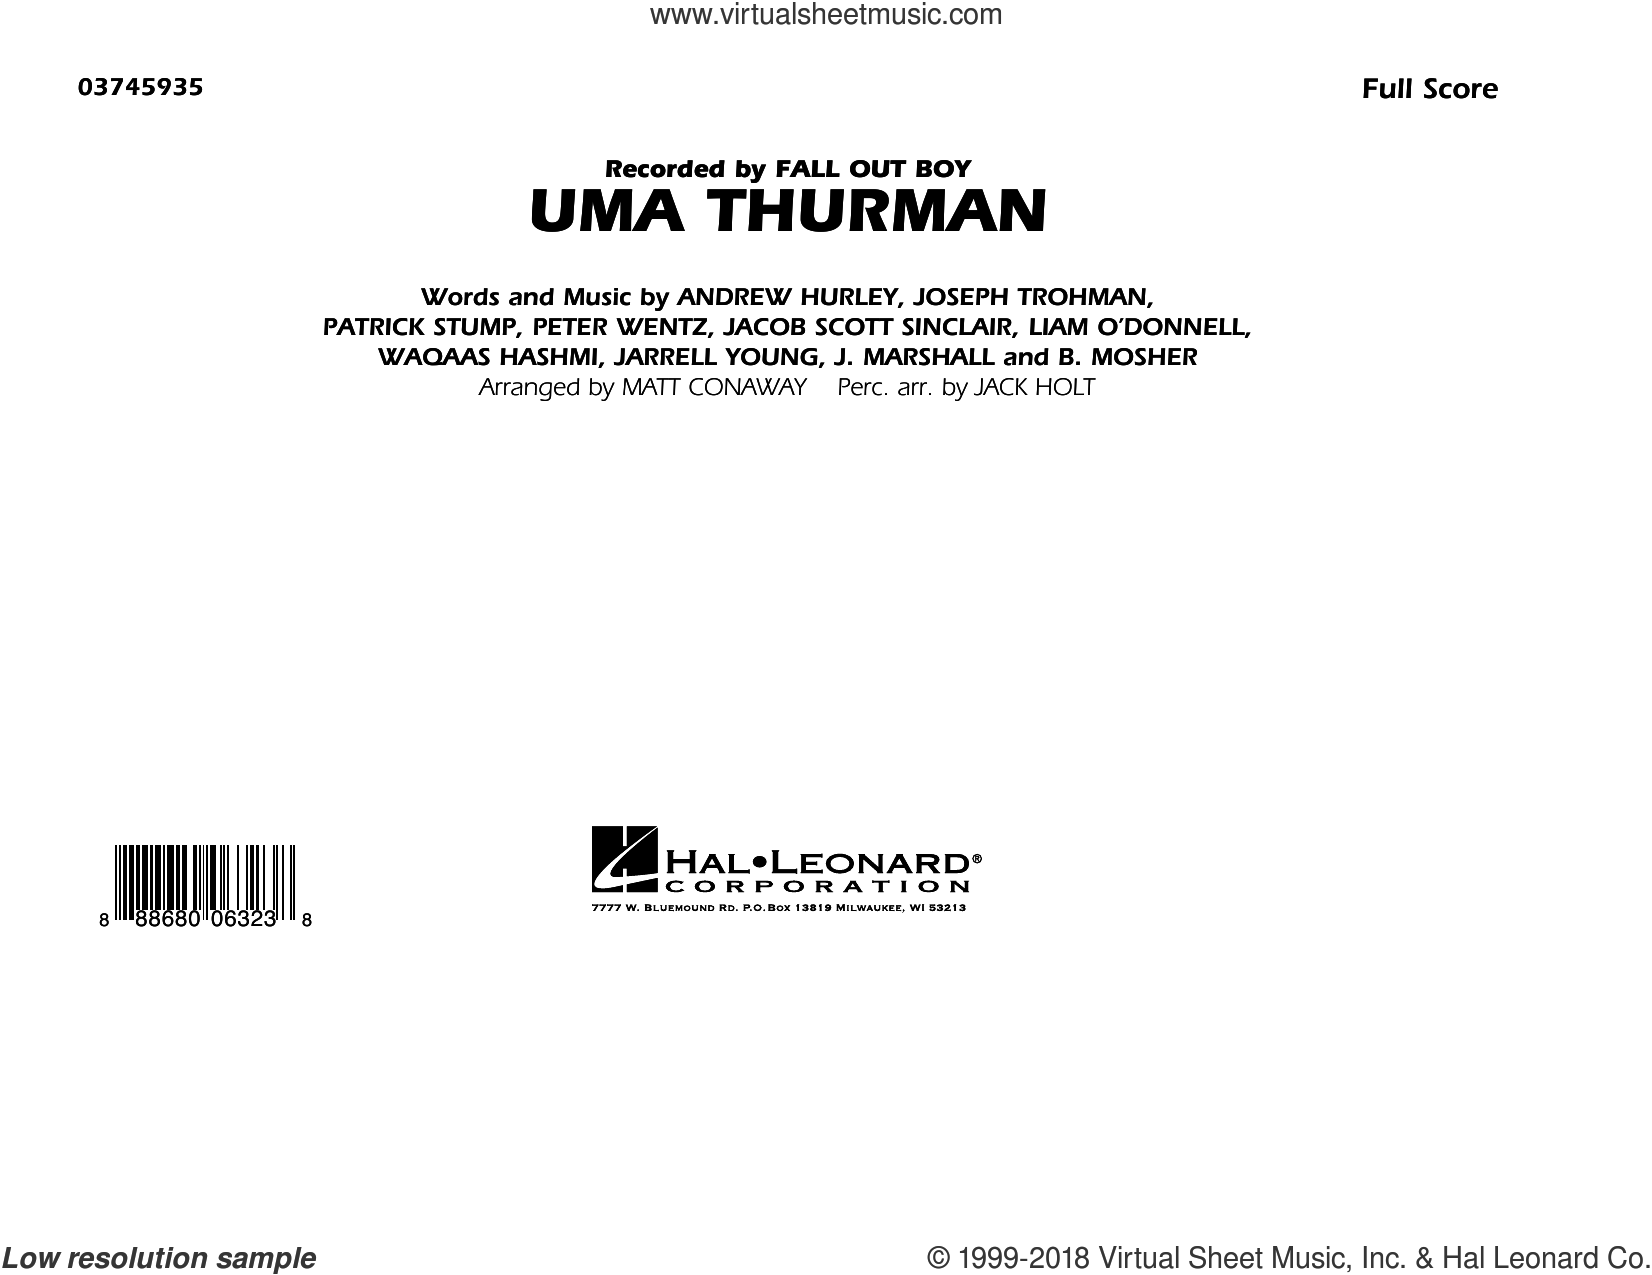 Uma Thurman (COMPLETE) sheet music for marching band by Matt Conaway, Andrew Hurley, B. Mosher, Fall Out Boy, J. Marshall, Jacob Scott Sinclair, Jarrell Young, Joseph Trohman, Patrick Stump, Peter Wentz and Waqaas Hashmi, intermediate skill level